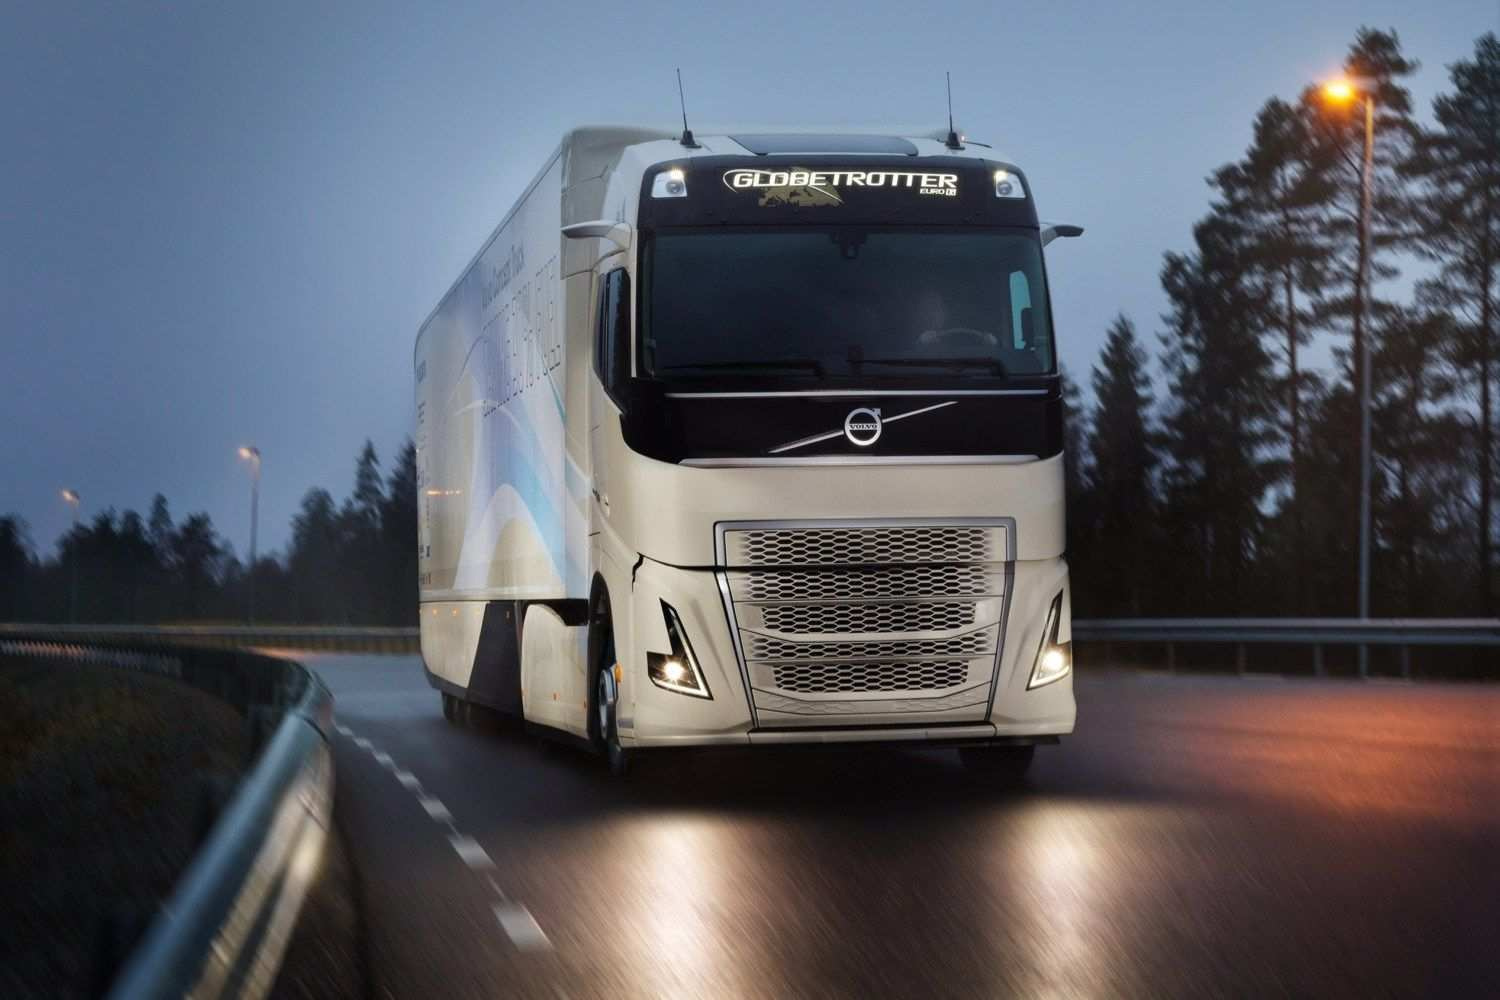 39 Great Volvo Electric Truck 2019 Review for Volvo Electric Truck 2019